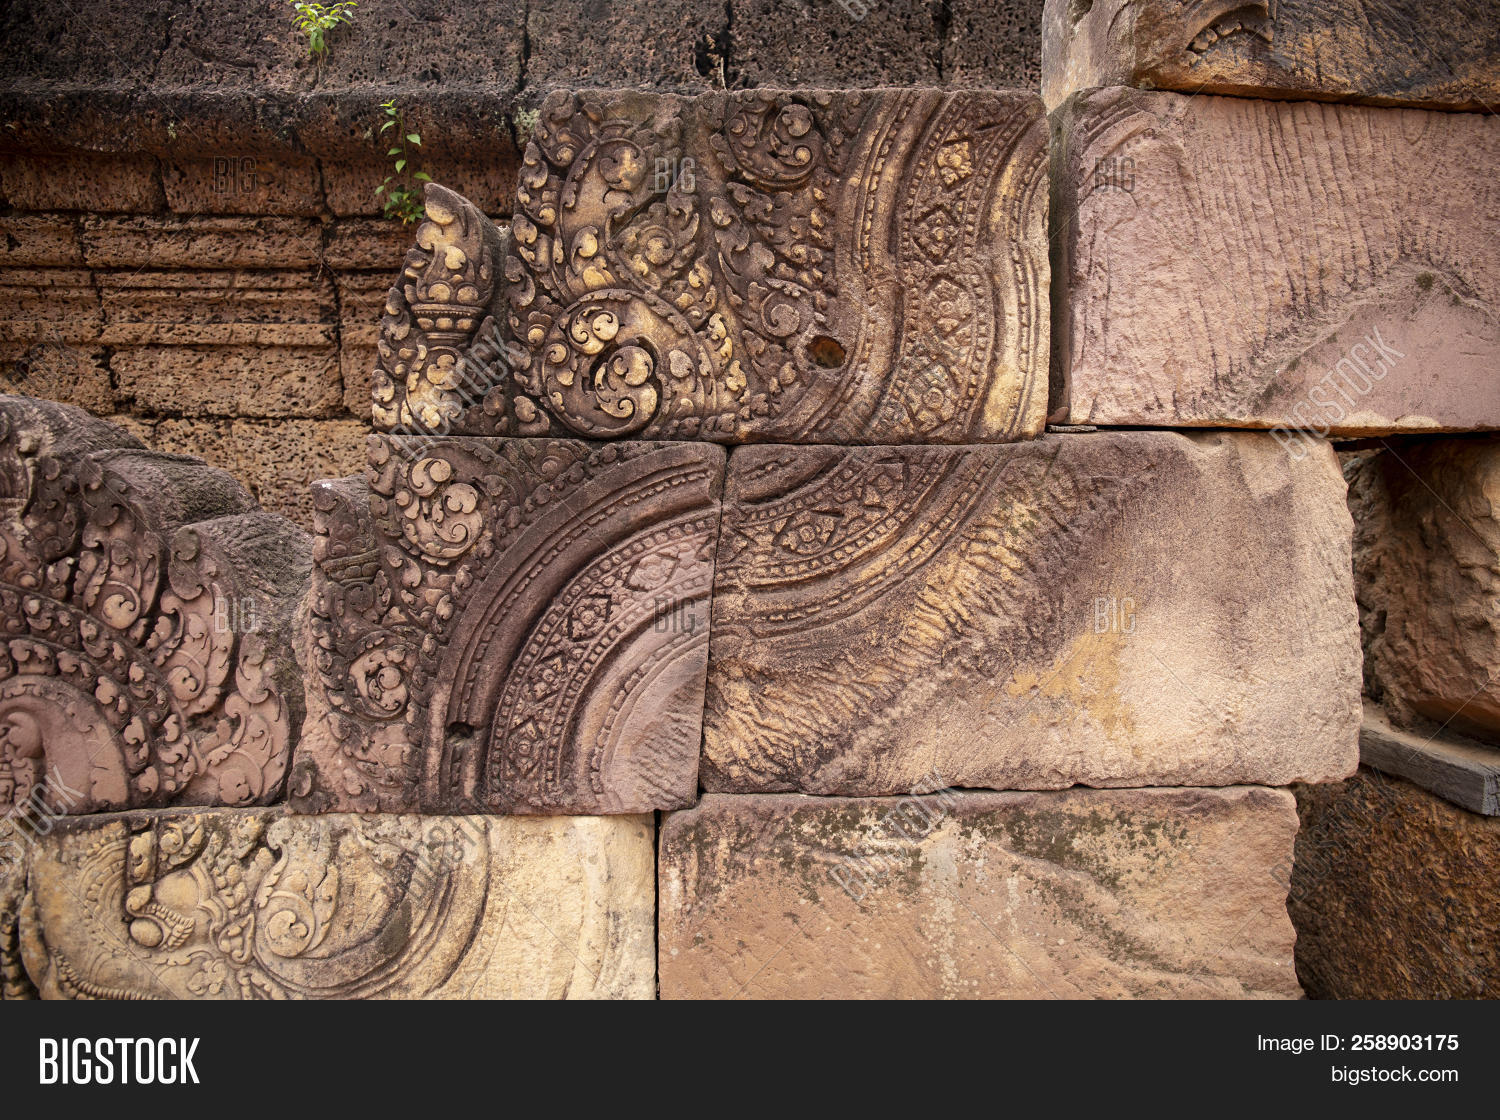 Stone carved bas relief of banteay srei temple in angkor wat